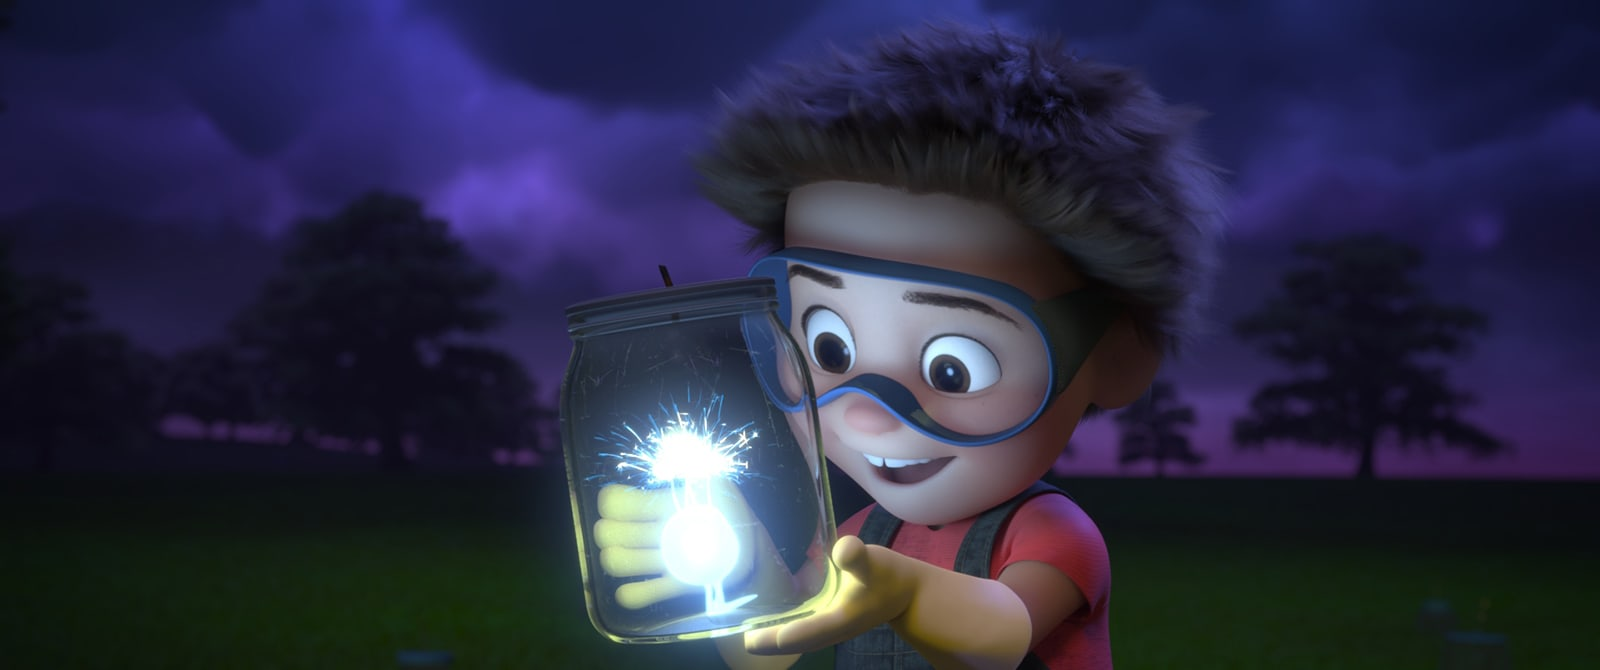 Little boy holding a glass jar of lightning